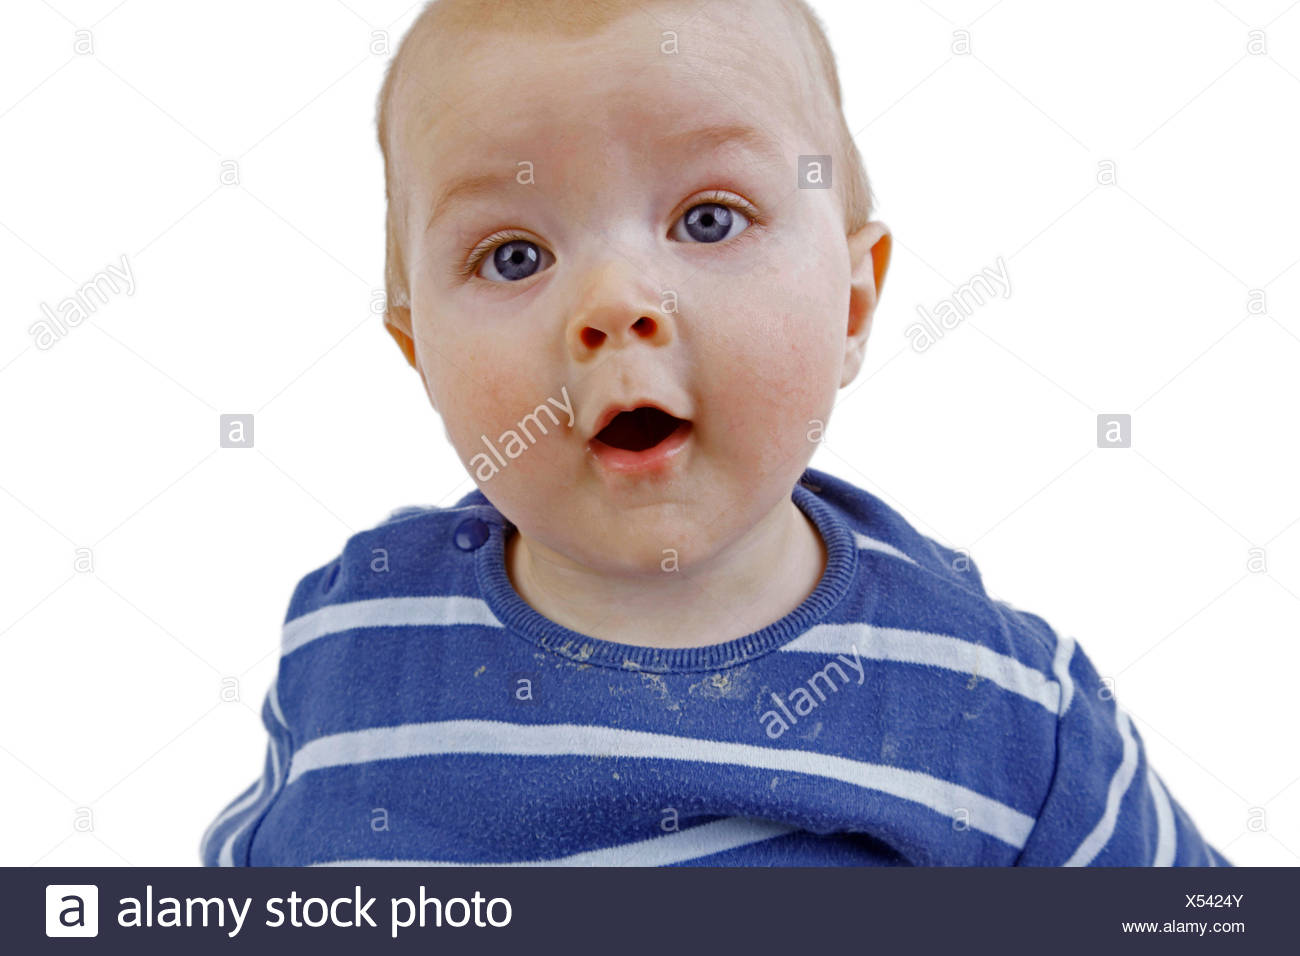 baby looking astonished at the camera - Stock Image